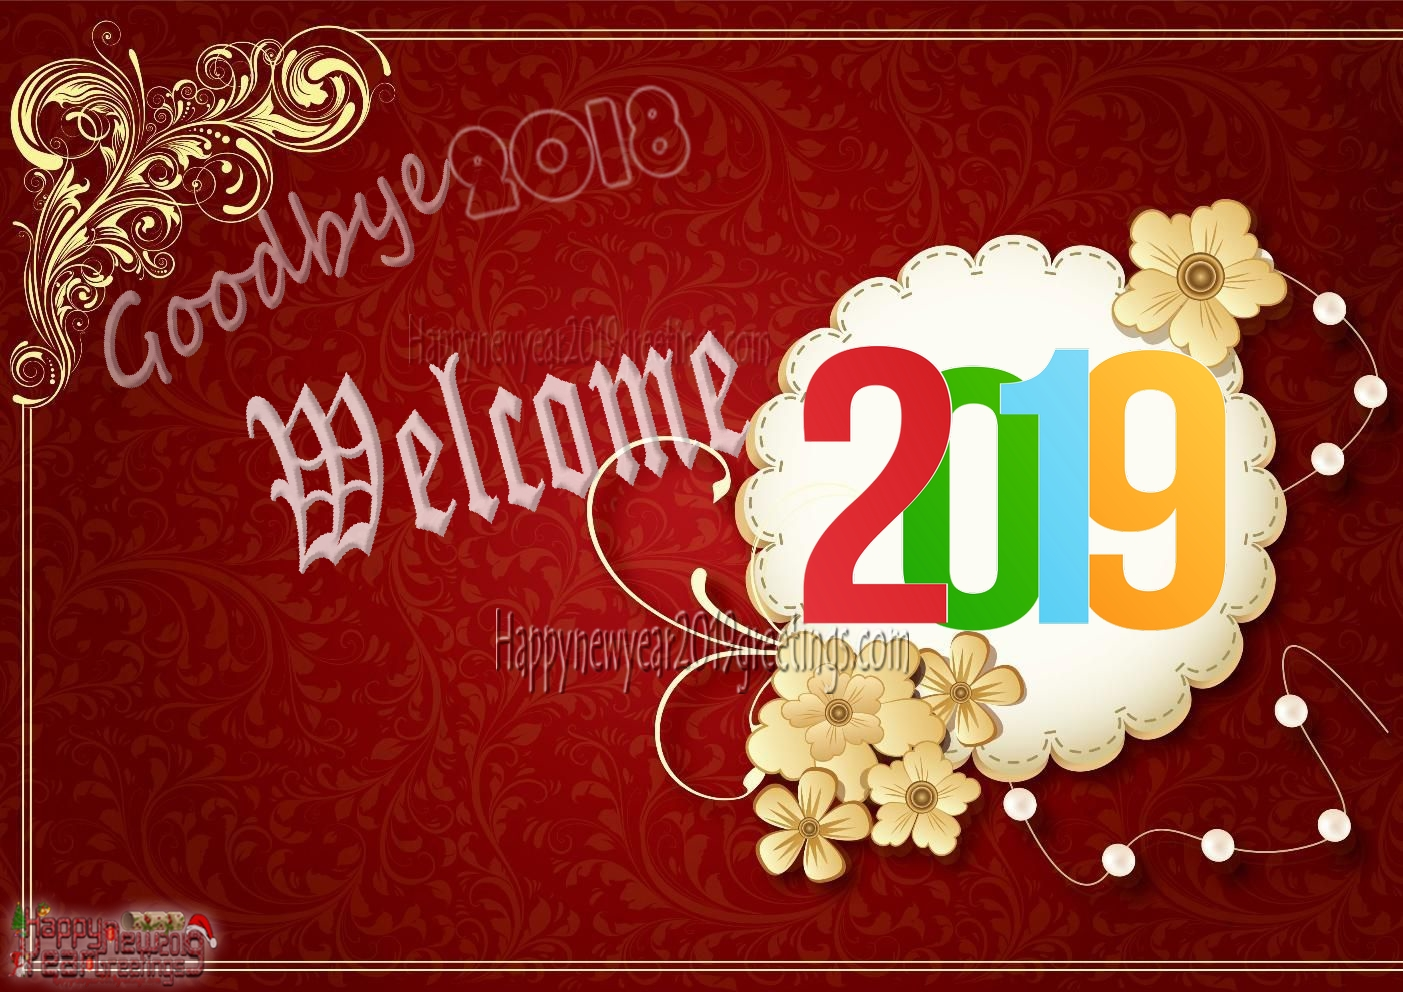 goodbye 2018 welcome new year 2019 images